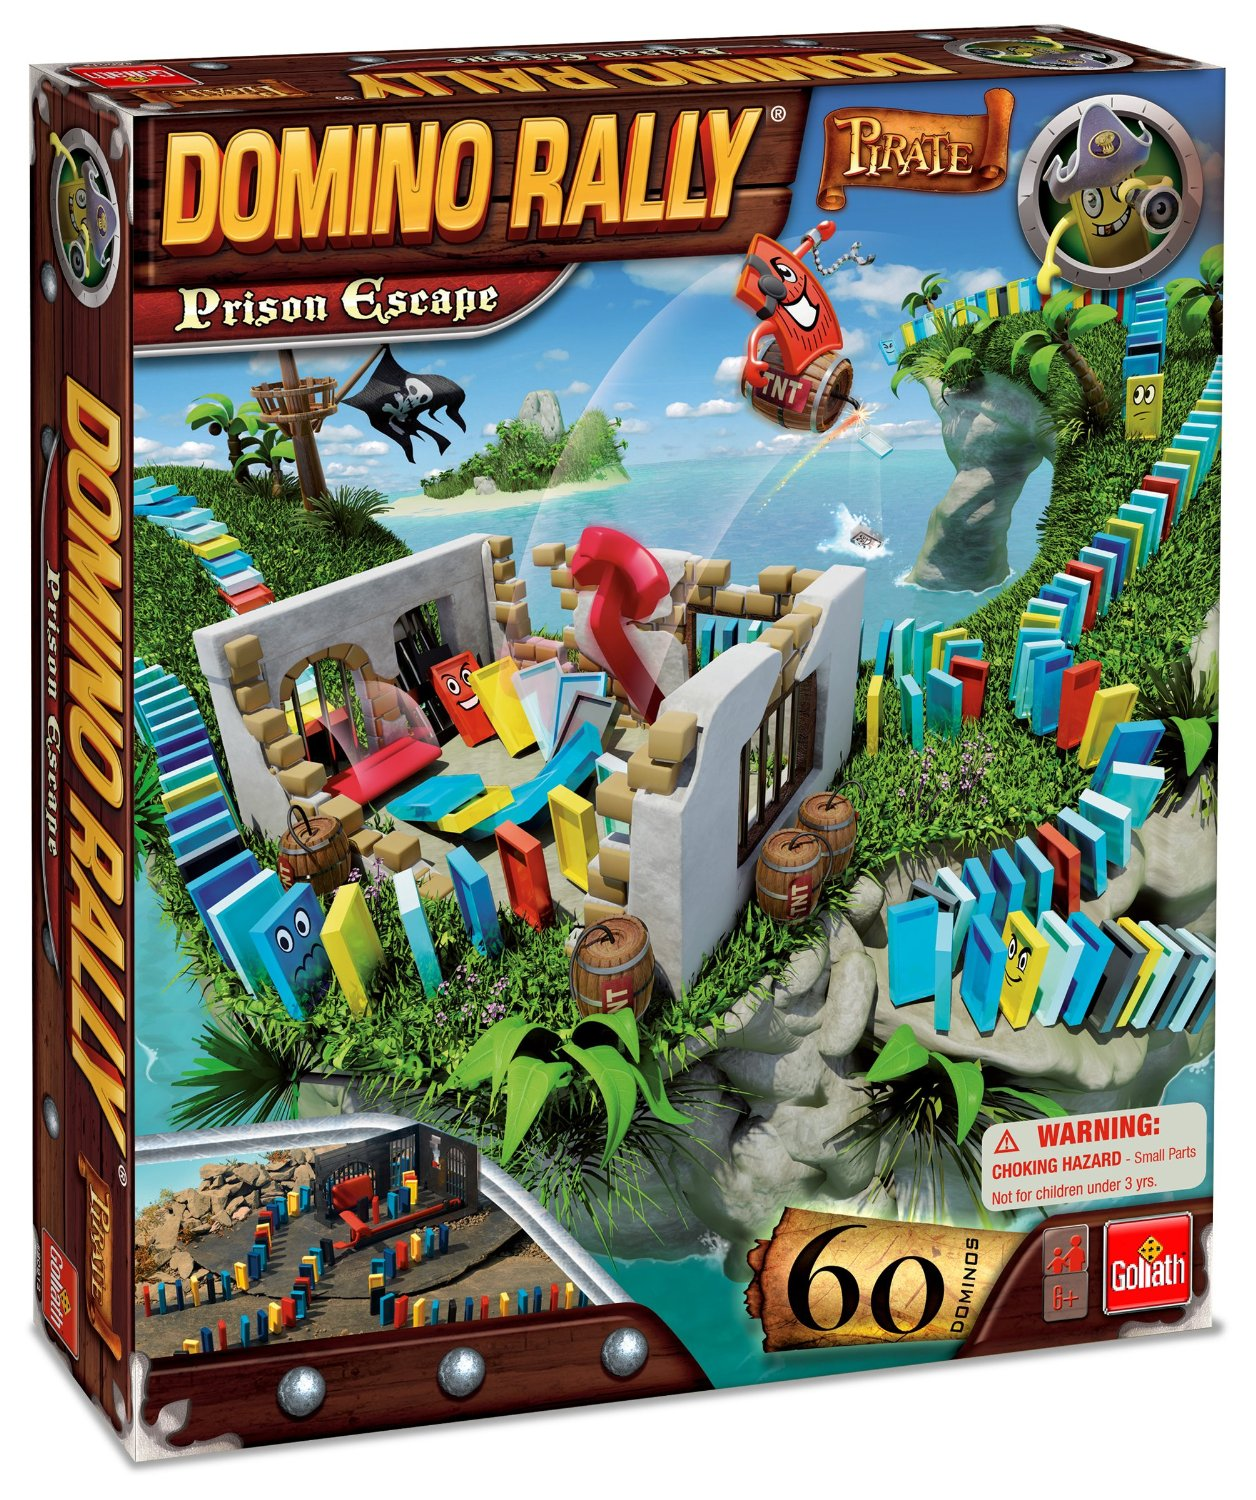 Domino Rally Pirate Prison Escape Set